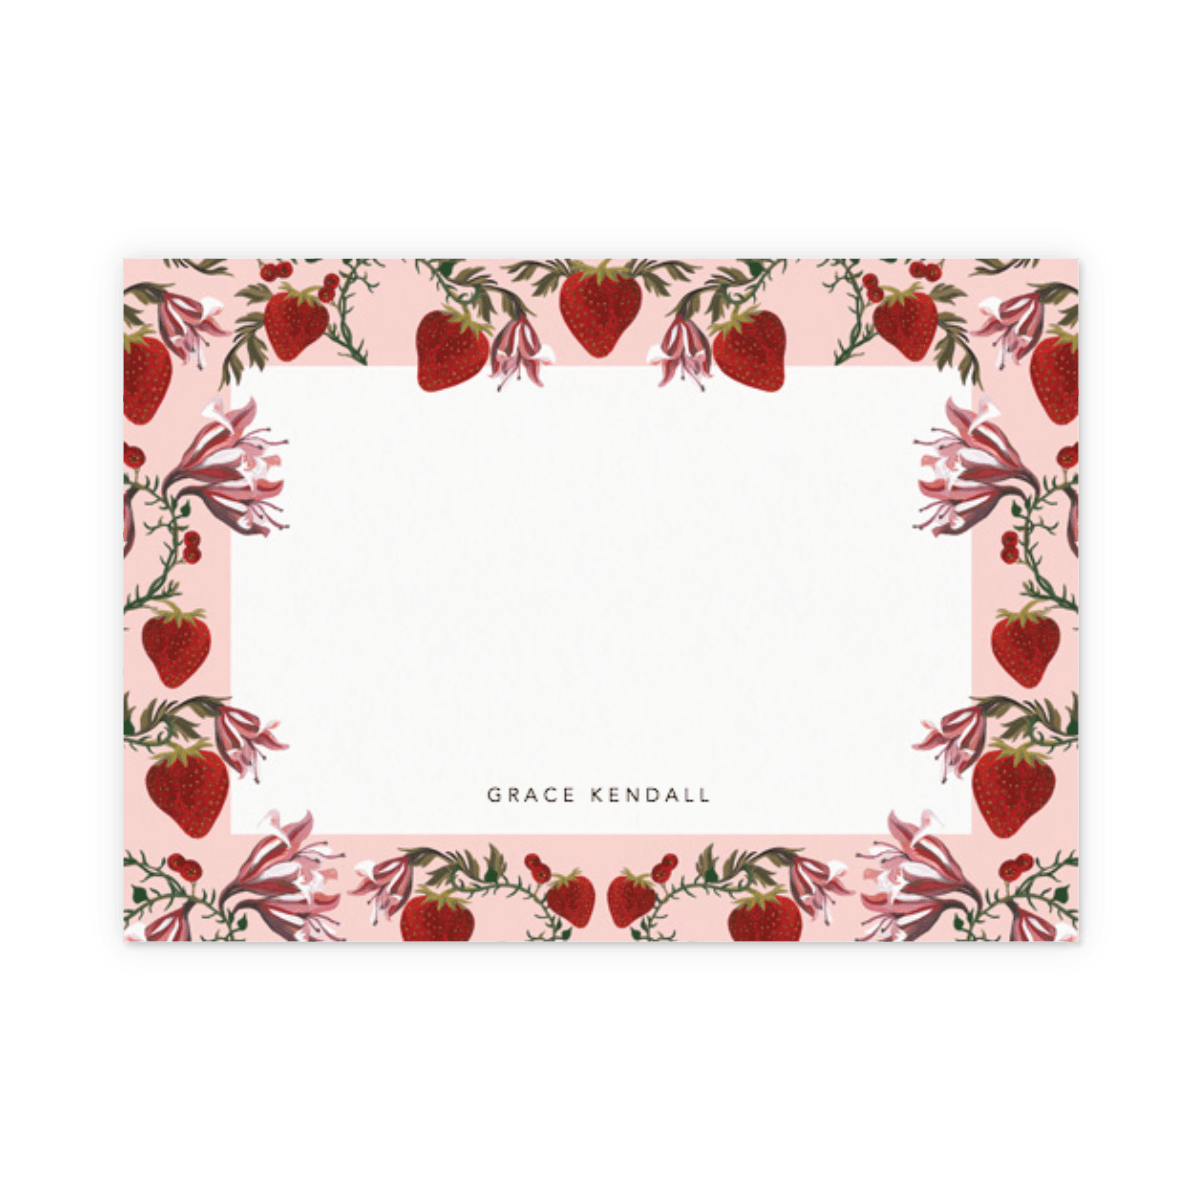 Https%3a%2f%2fwww.papier.com%2fproduct image%2f45236%2f10%2fstrawberry floral 11228 vorderseite 1559066963.png?ixlib=rb 1.1